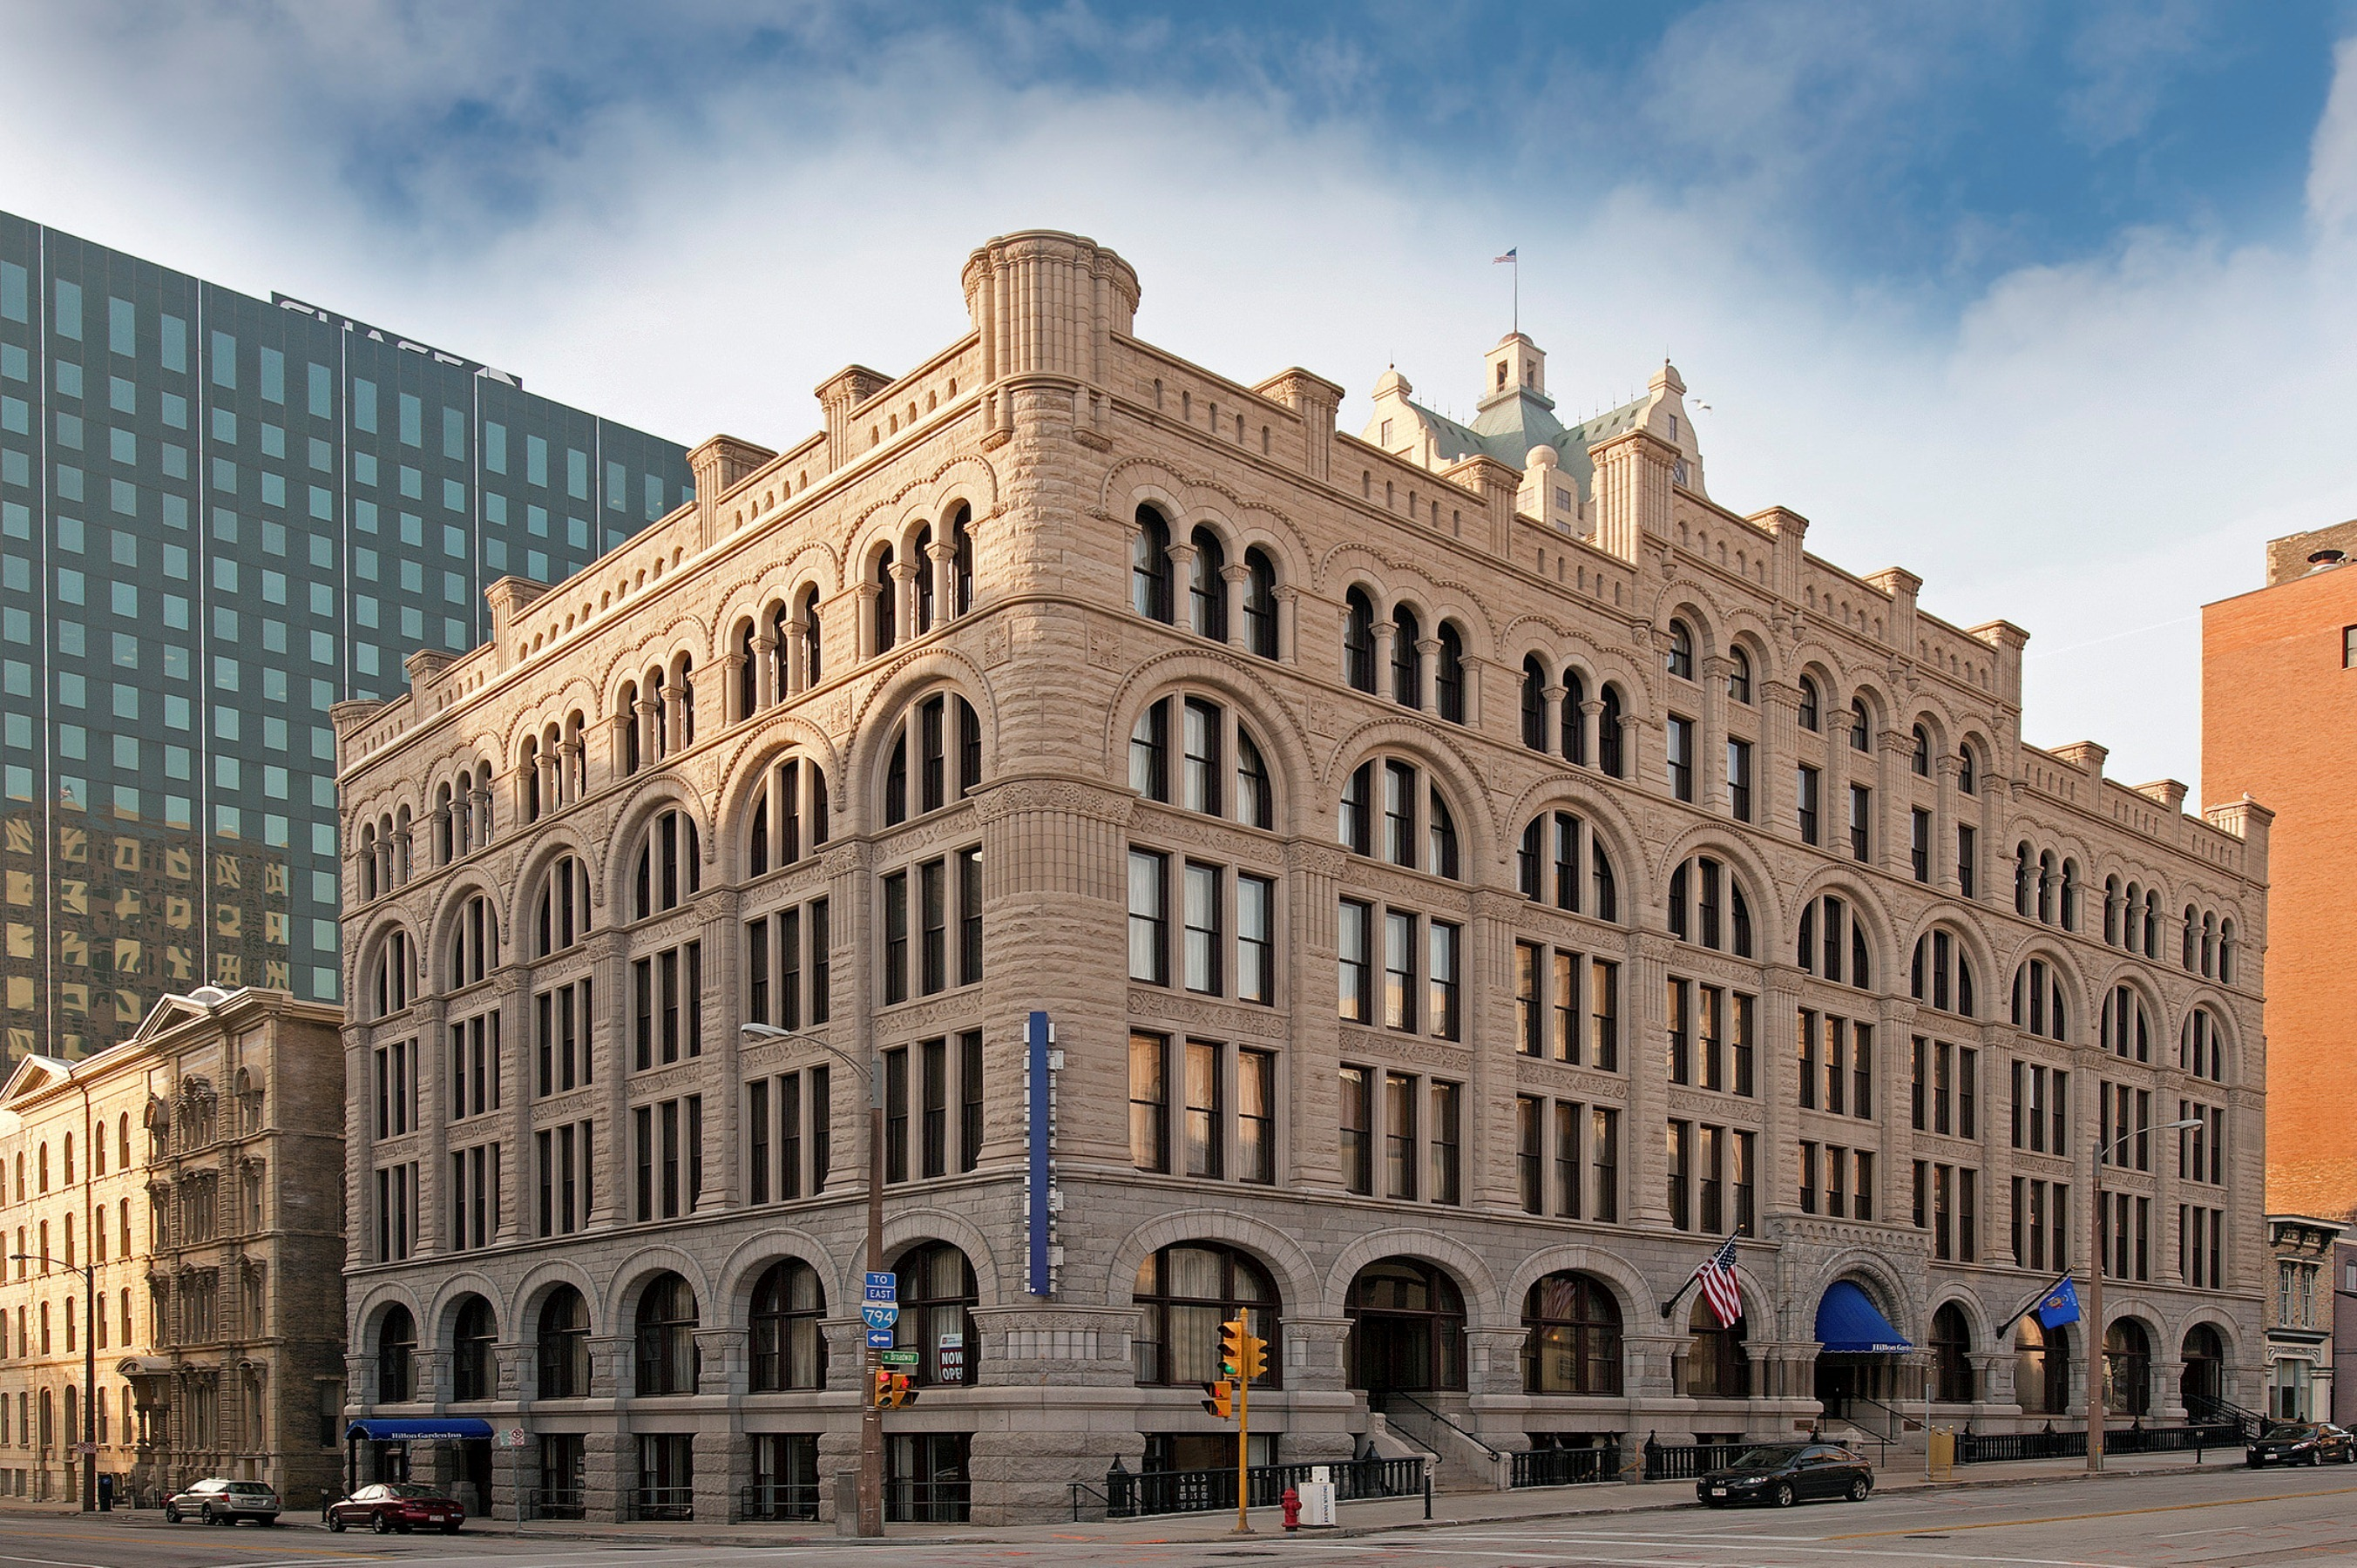 Best hotels in milwaukee including boutiques and more - Hilton garden inn grand ave chicago ...